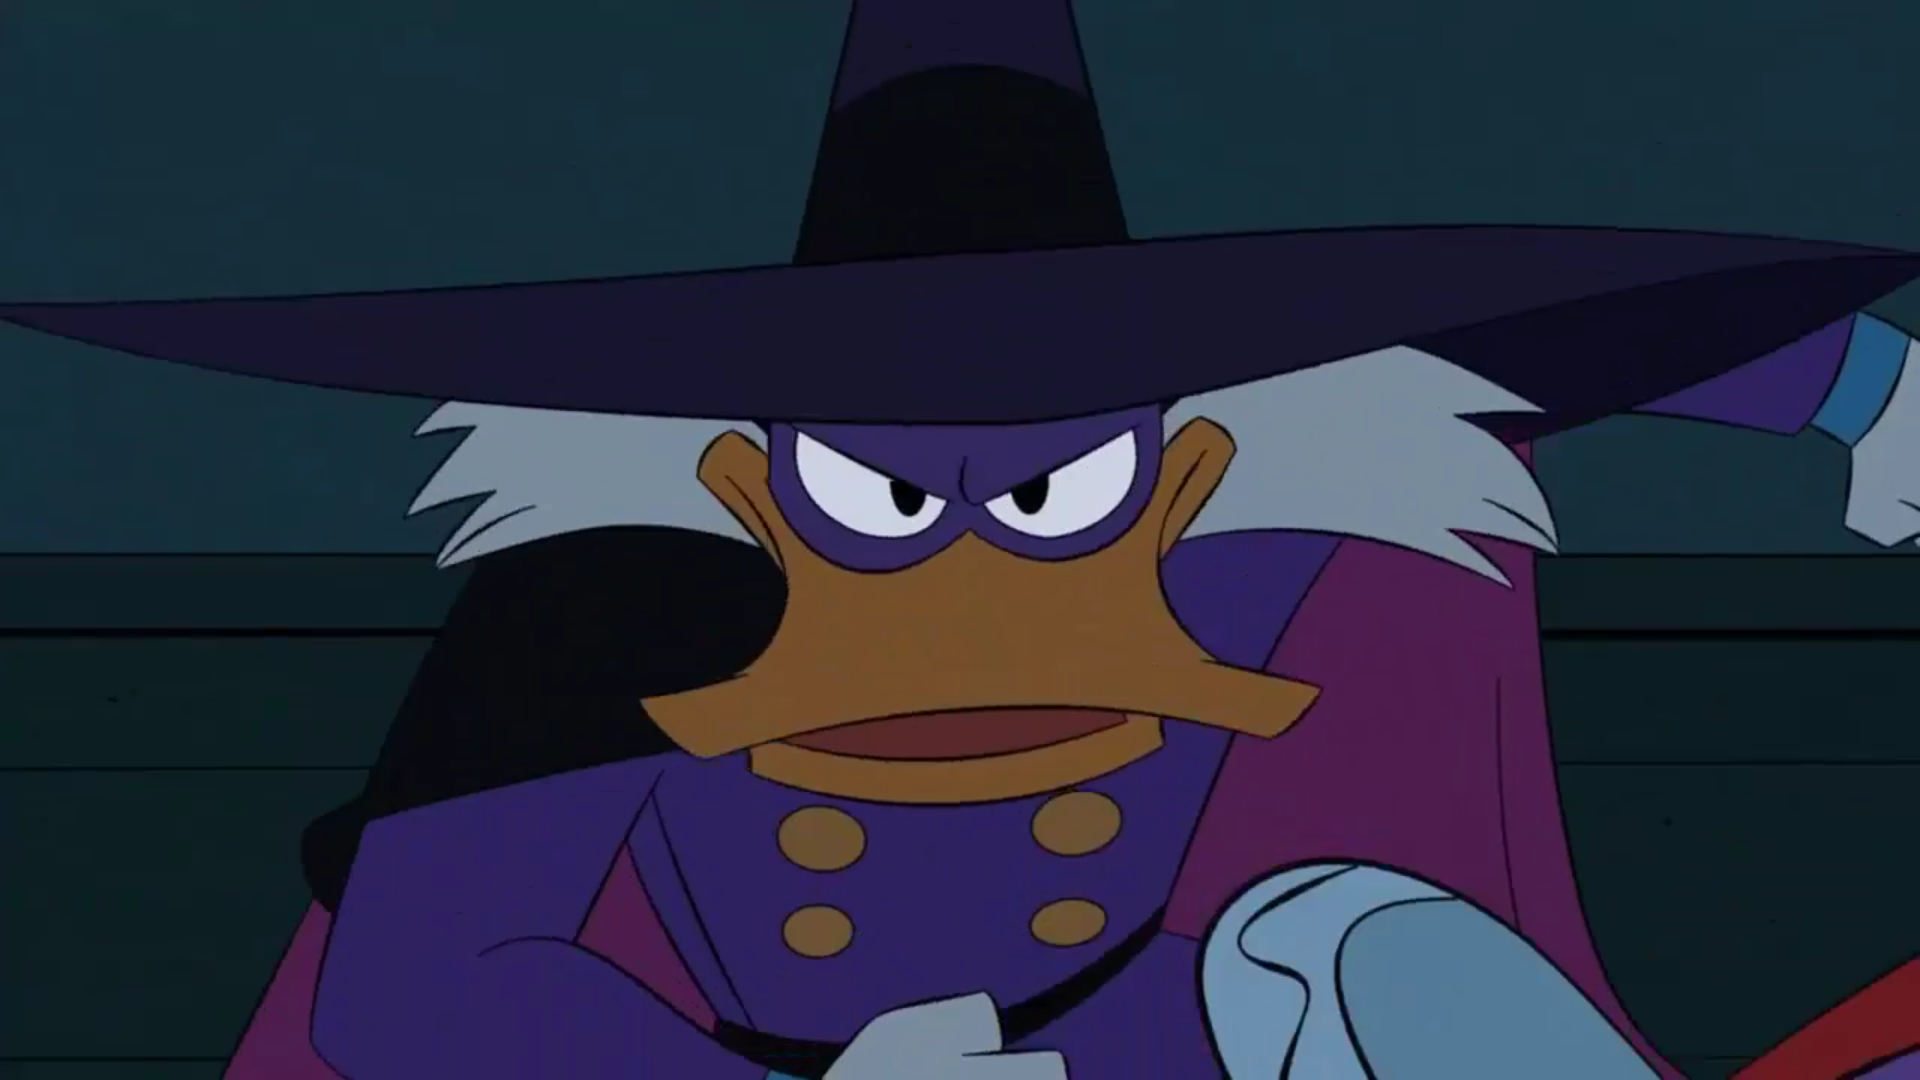 Darkwing Duck 2017 DuckTales Wiki FANDOM powered by Wikia 1920x1080